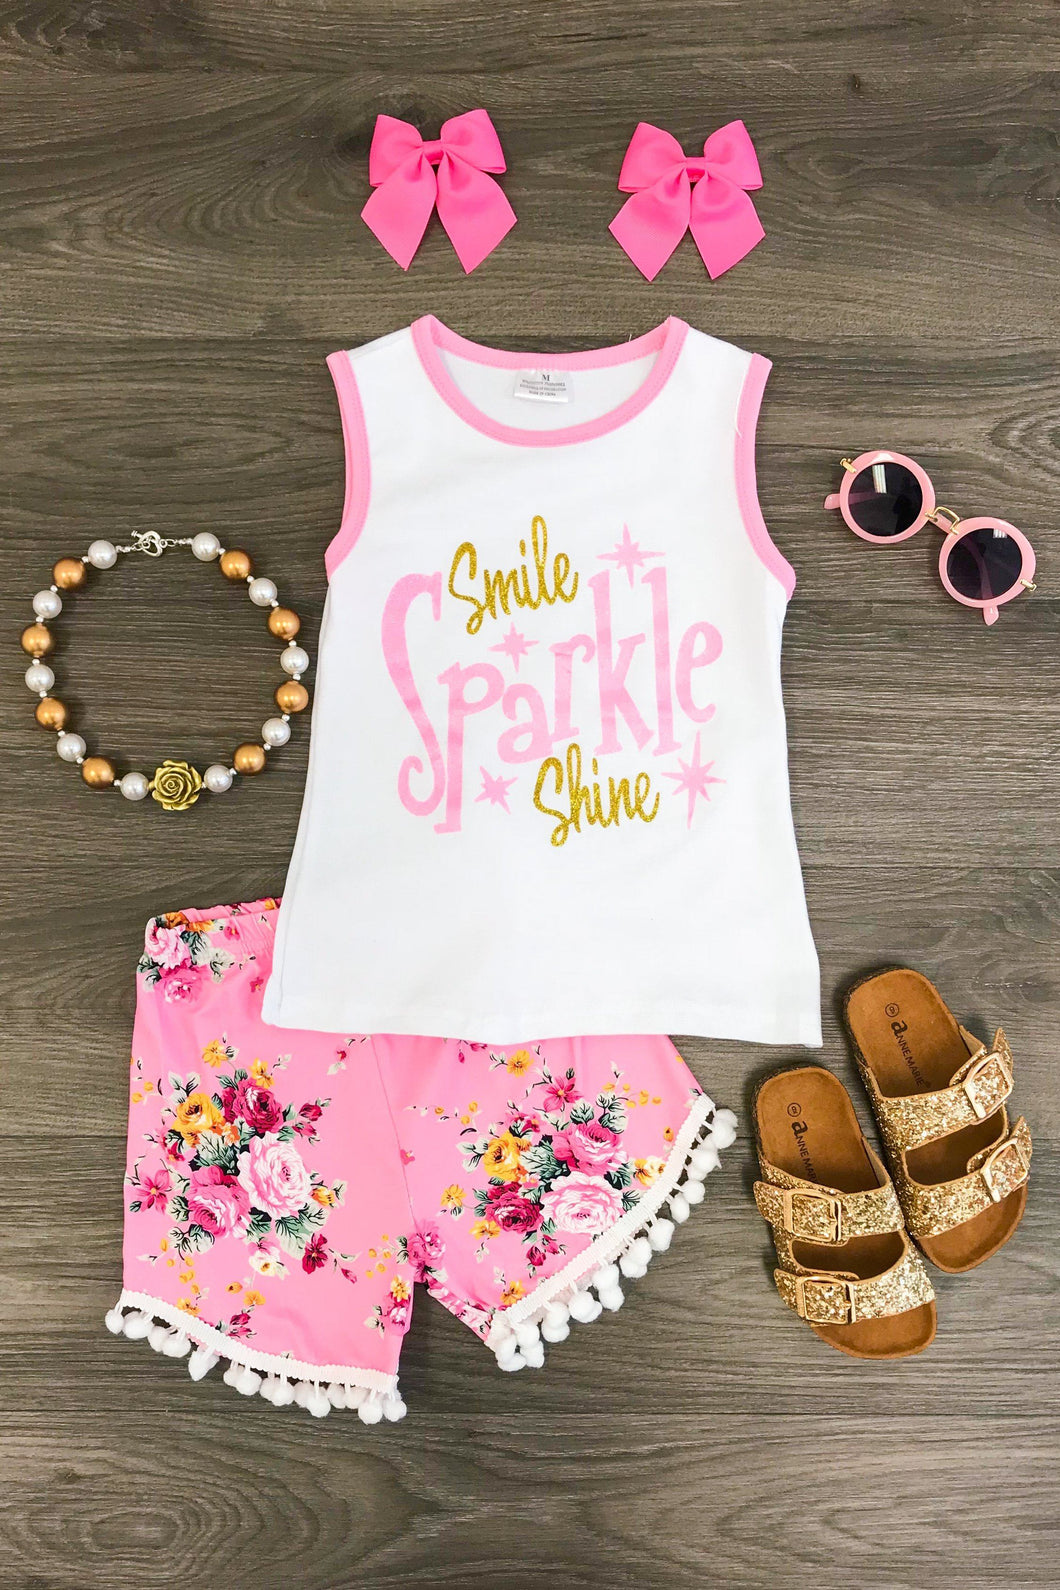 Smile Sparkle Shine Outfit